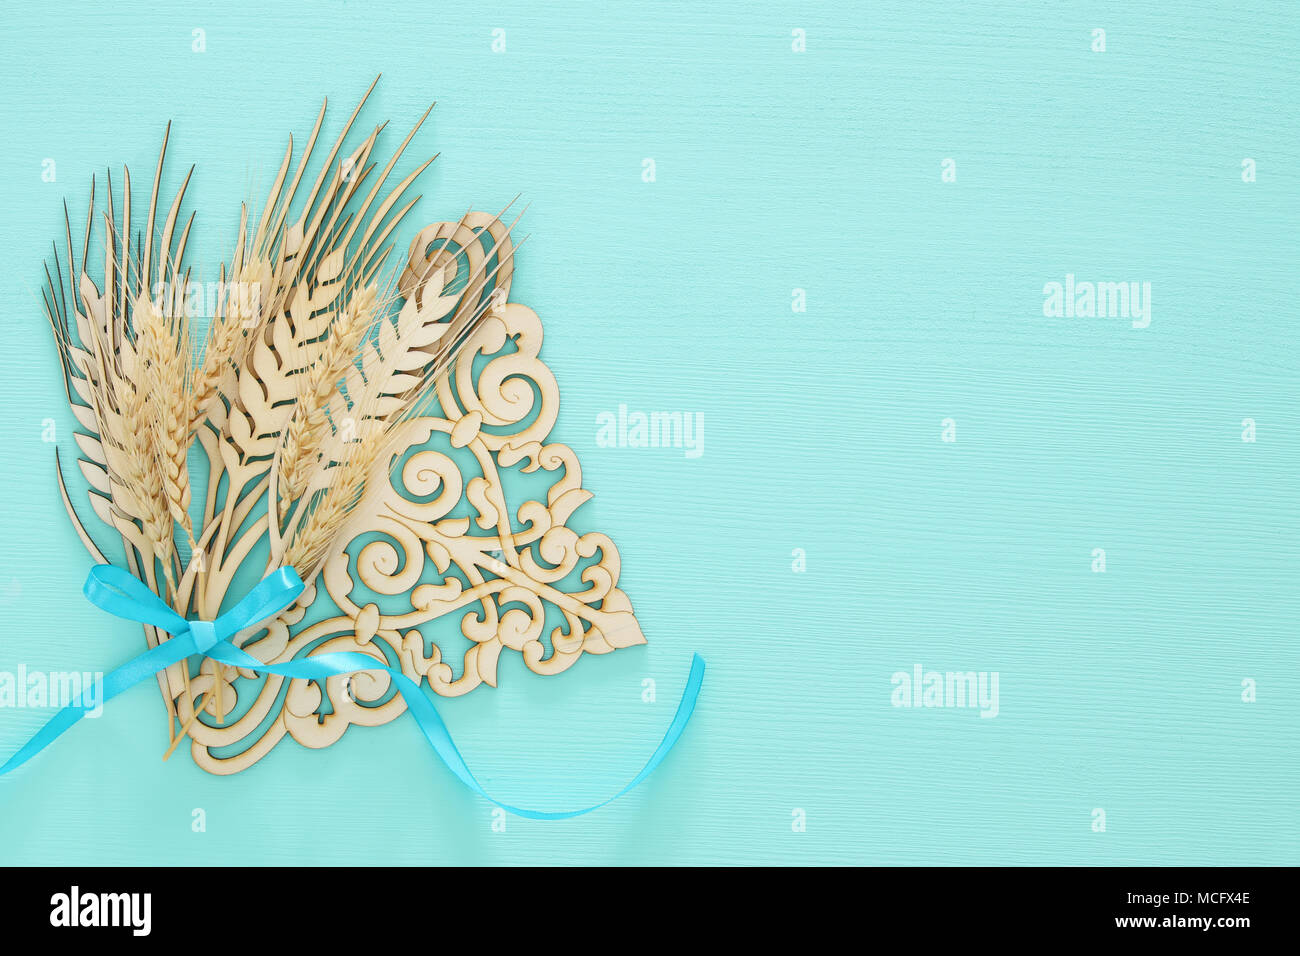 Top View Of Wooden Wheat Crop Decoration Over Mint Background